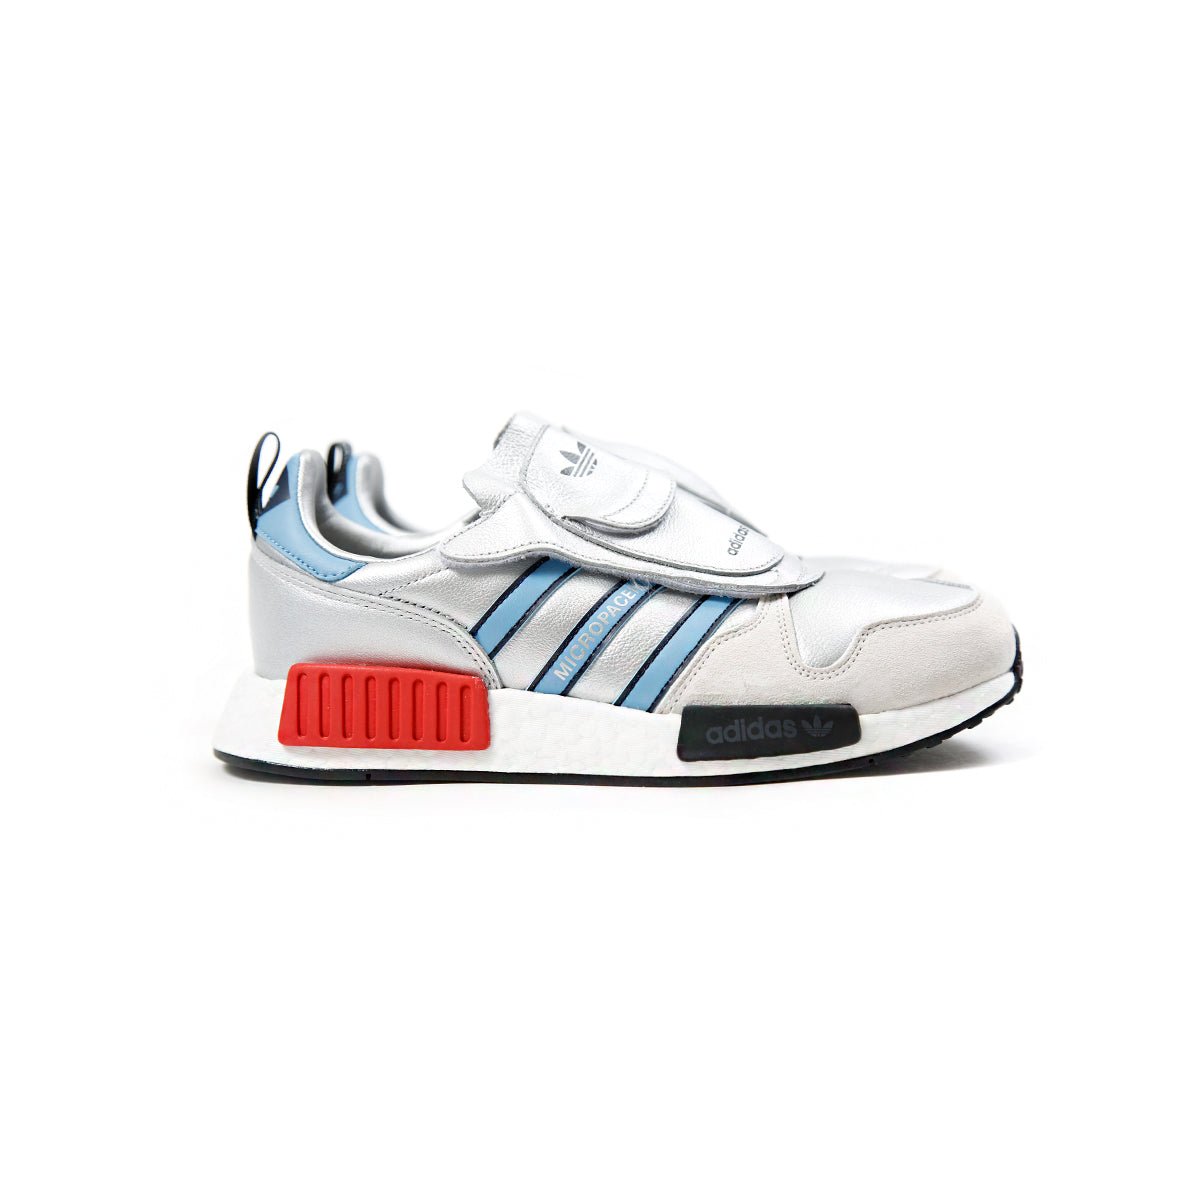 adidas Micropacer X R1 Leather And Suede Sneakers Herren